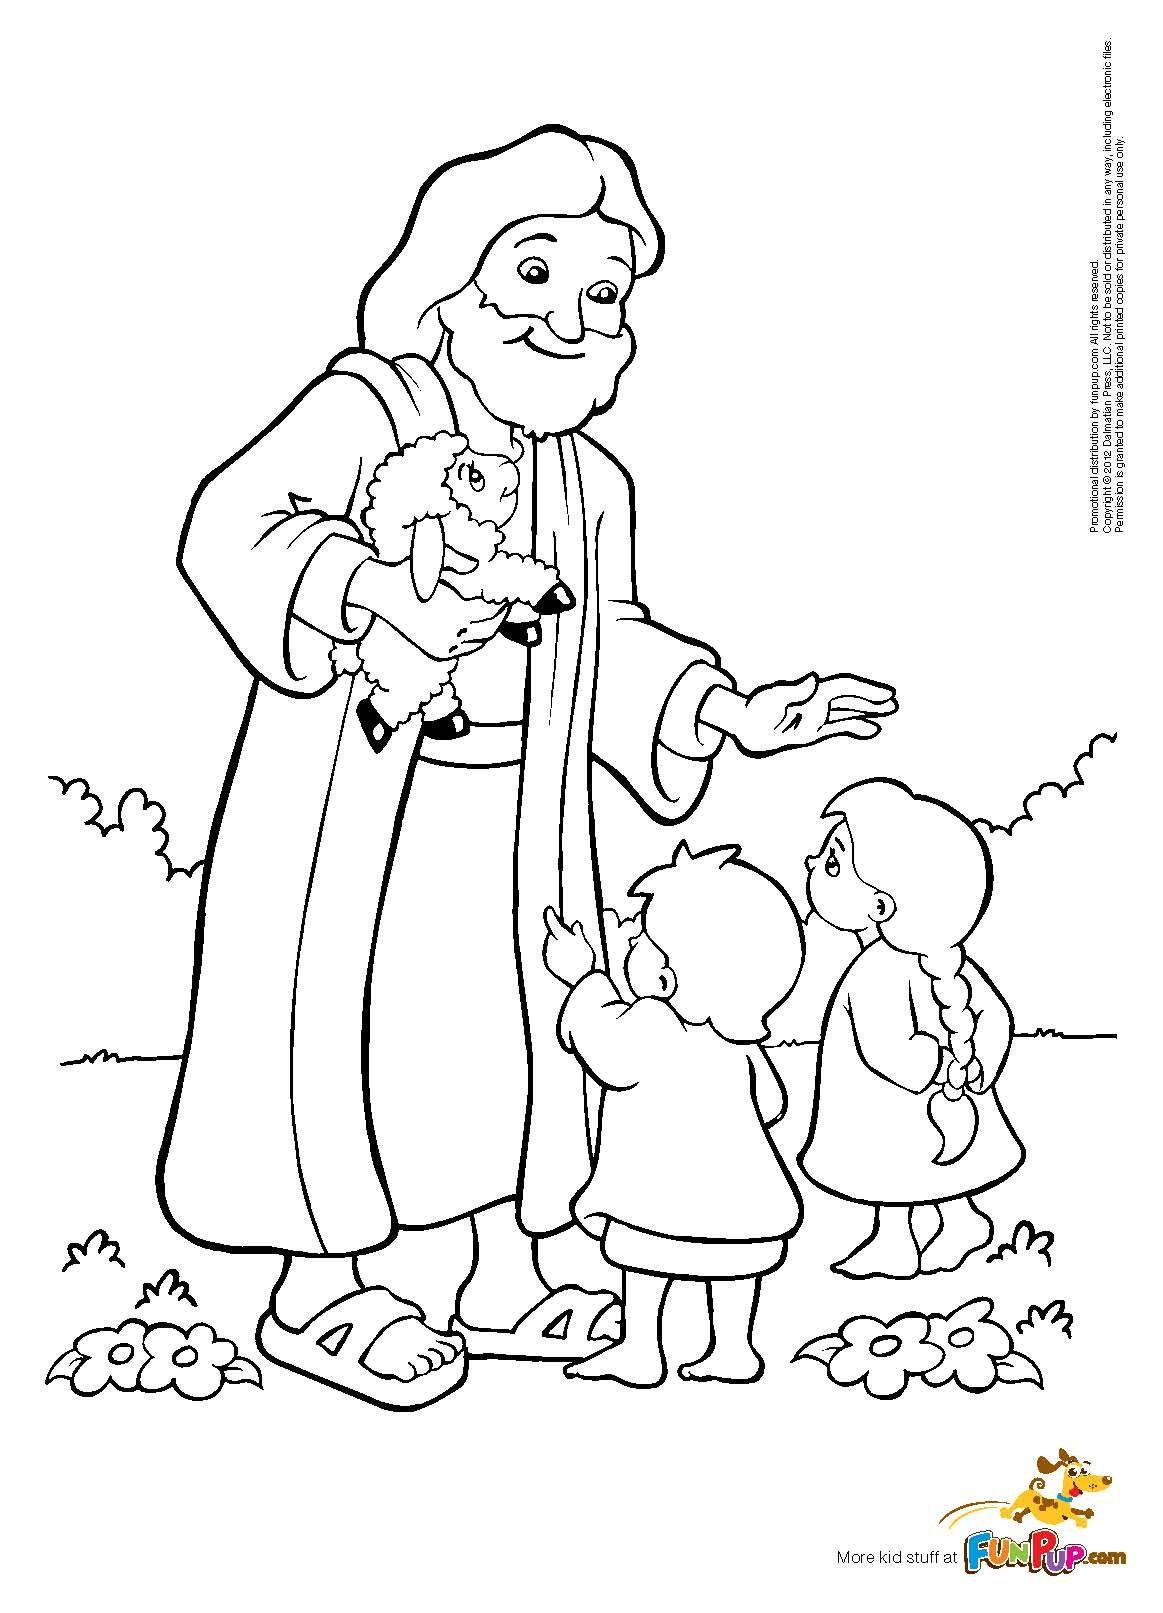 Coloring Pages Of Jesus Brilliant Jesus Loves Me  Jesus Love Me And The Other Children Too Inspiration Design